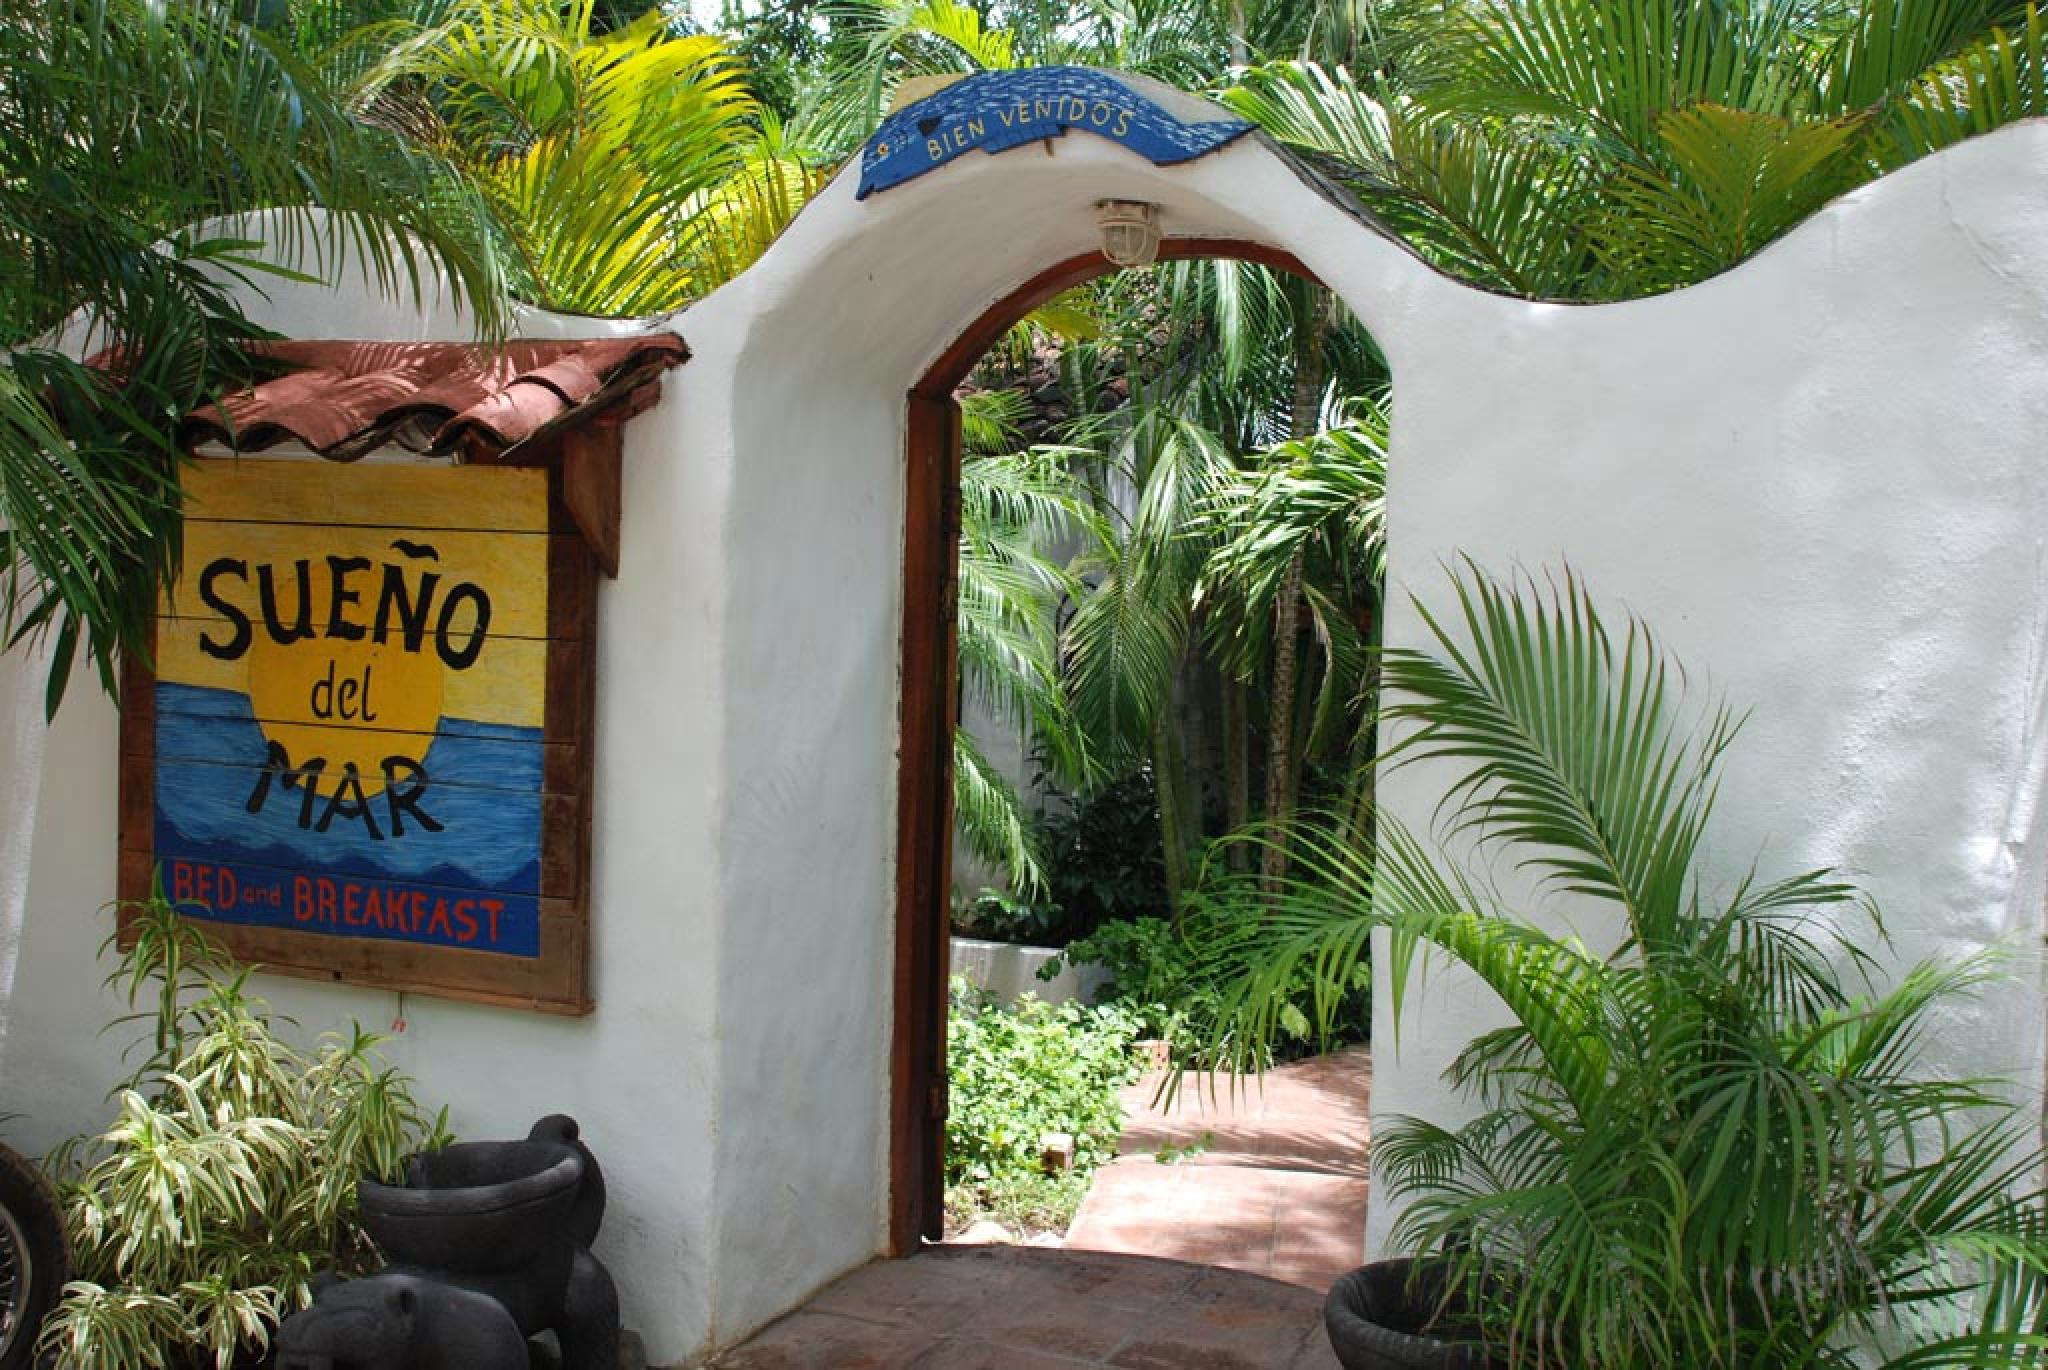 Sueno del Mar Bed & Breakfast